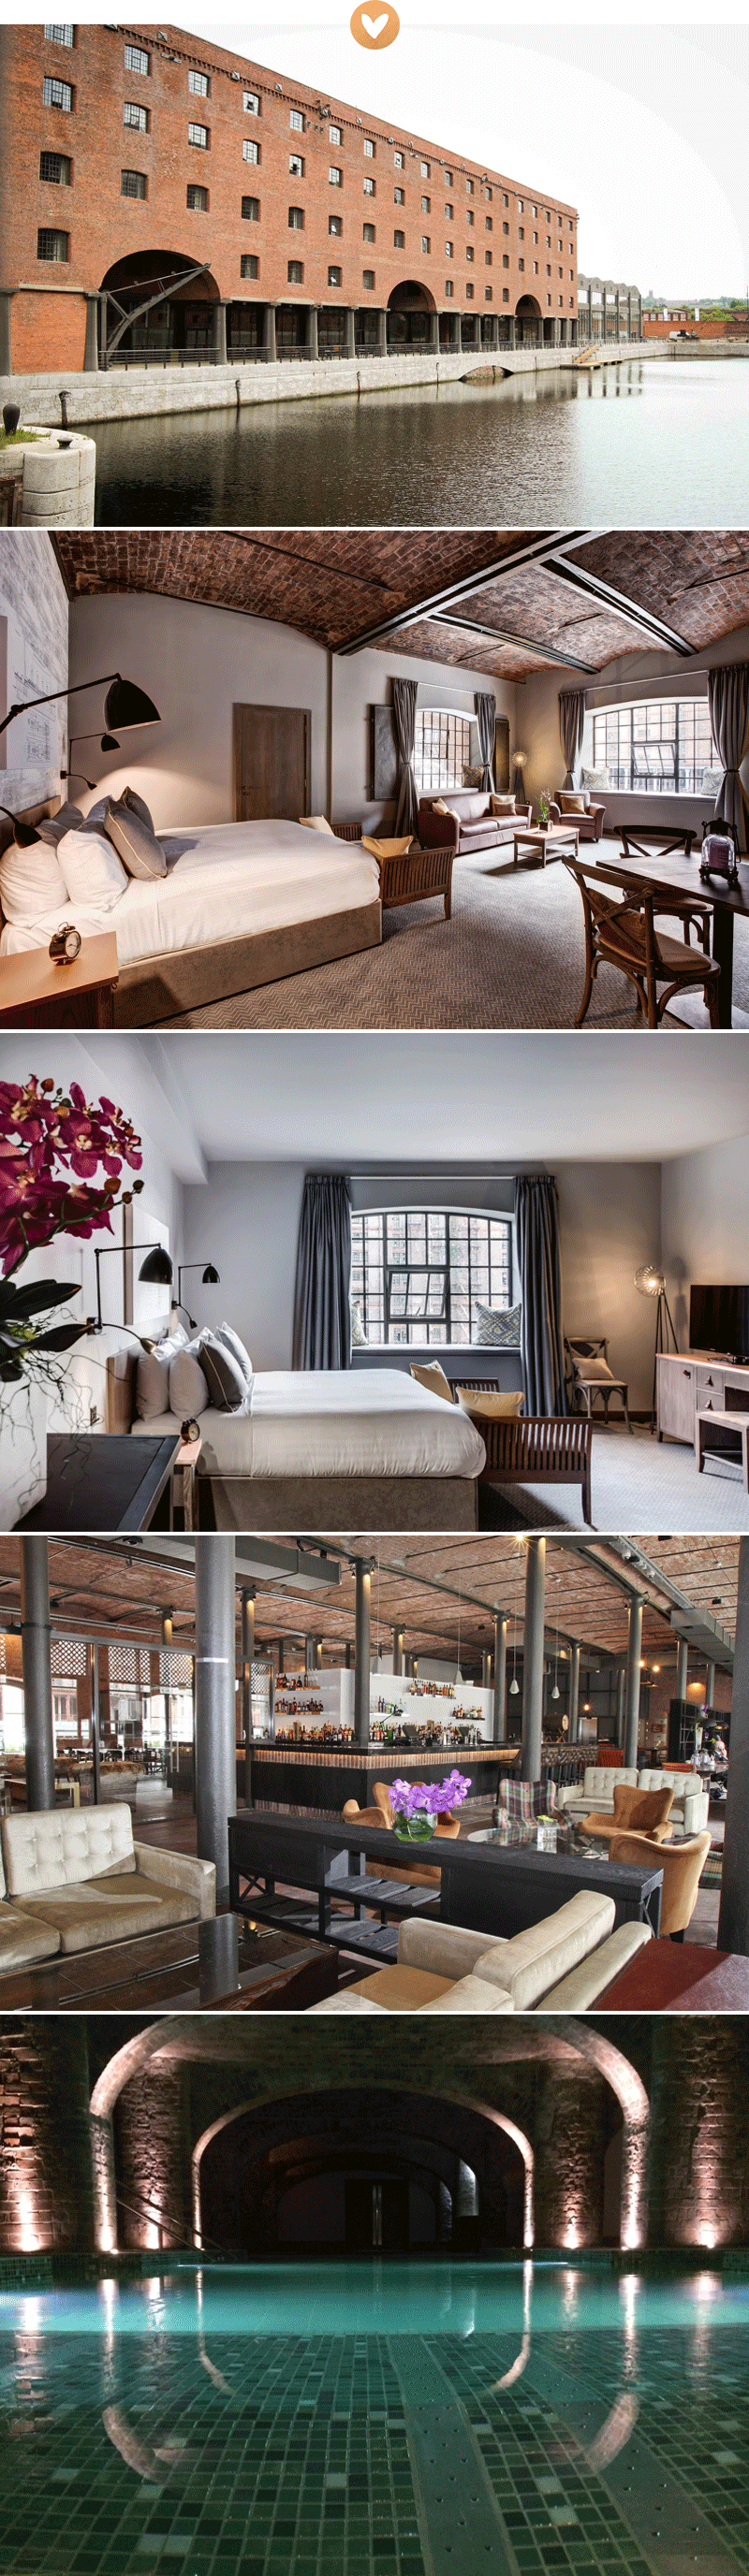 city-break-liverpool-wedding-venue-the-rum-warehouse-for-coco-wedding-venues-001a